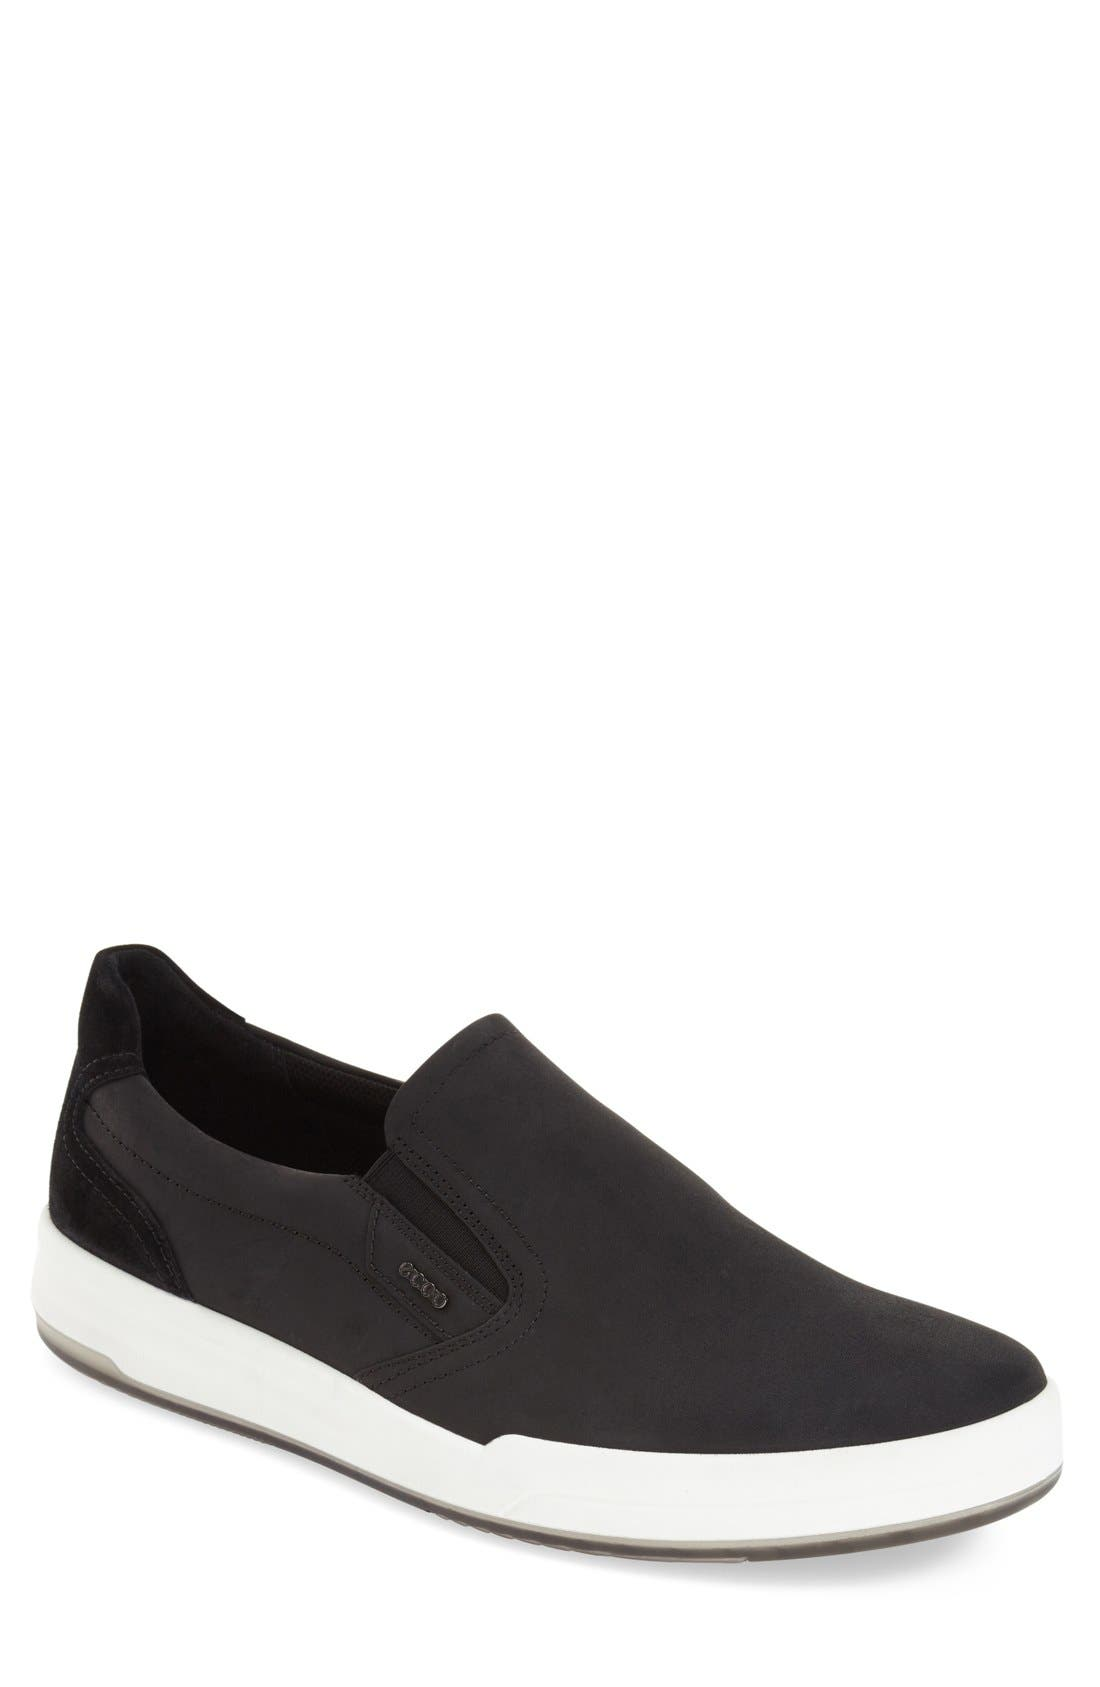 'Jack' Slip-On,                         Main,                         color, 001